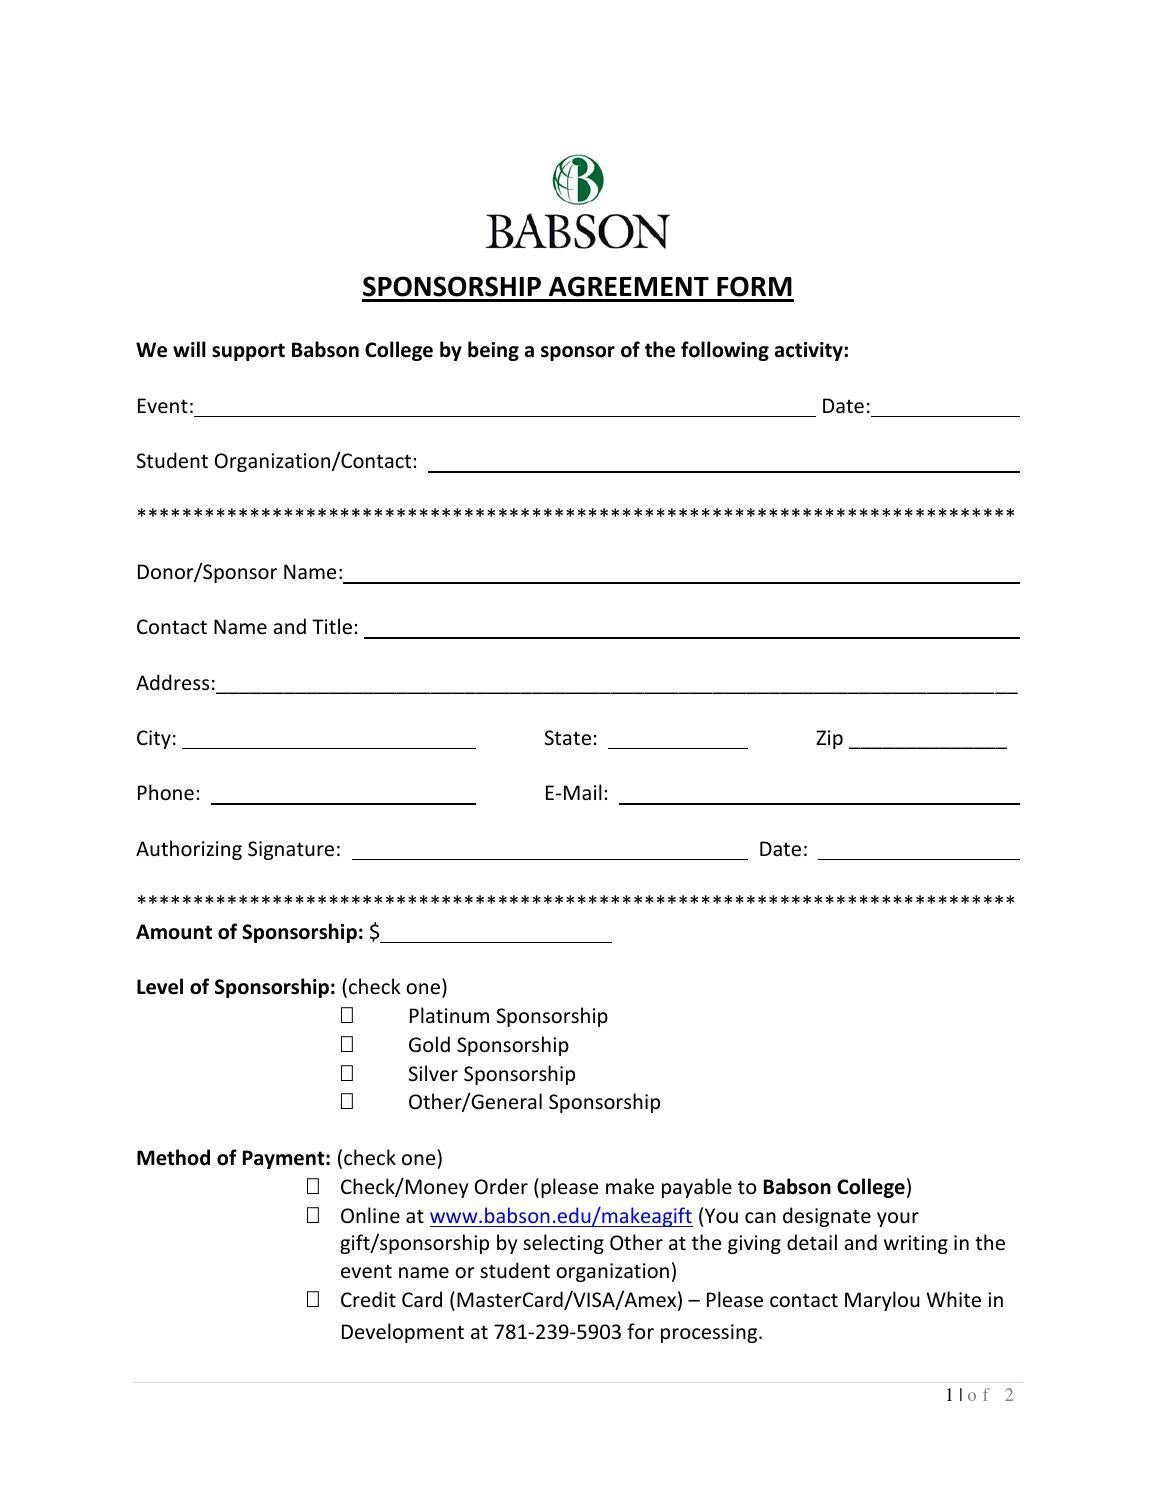 Basic Sponsorship Agreement Form by Chuck issuu – Sponsorship Agreement Form